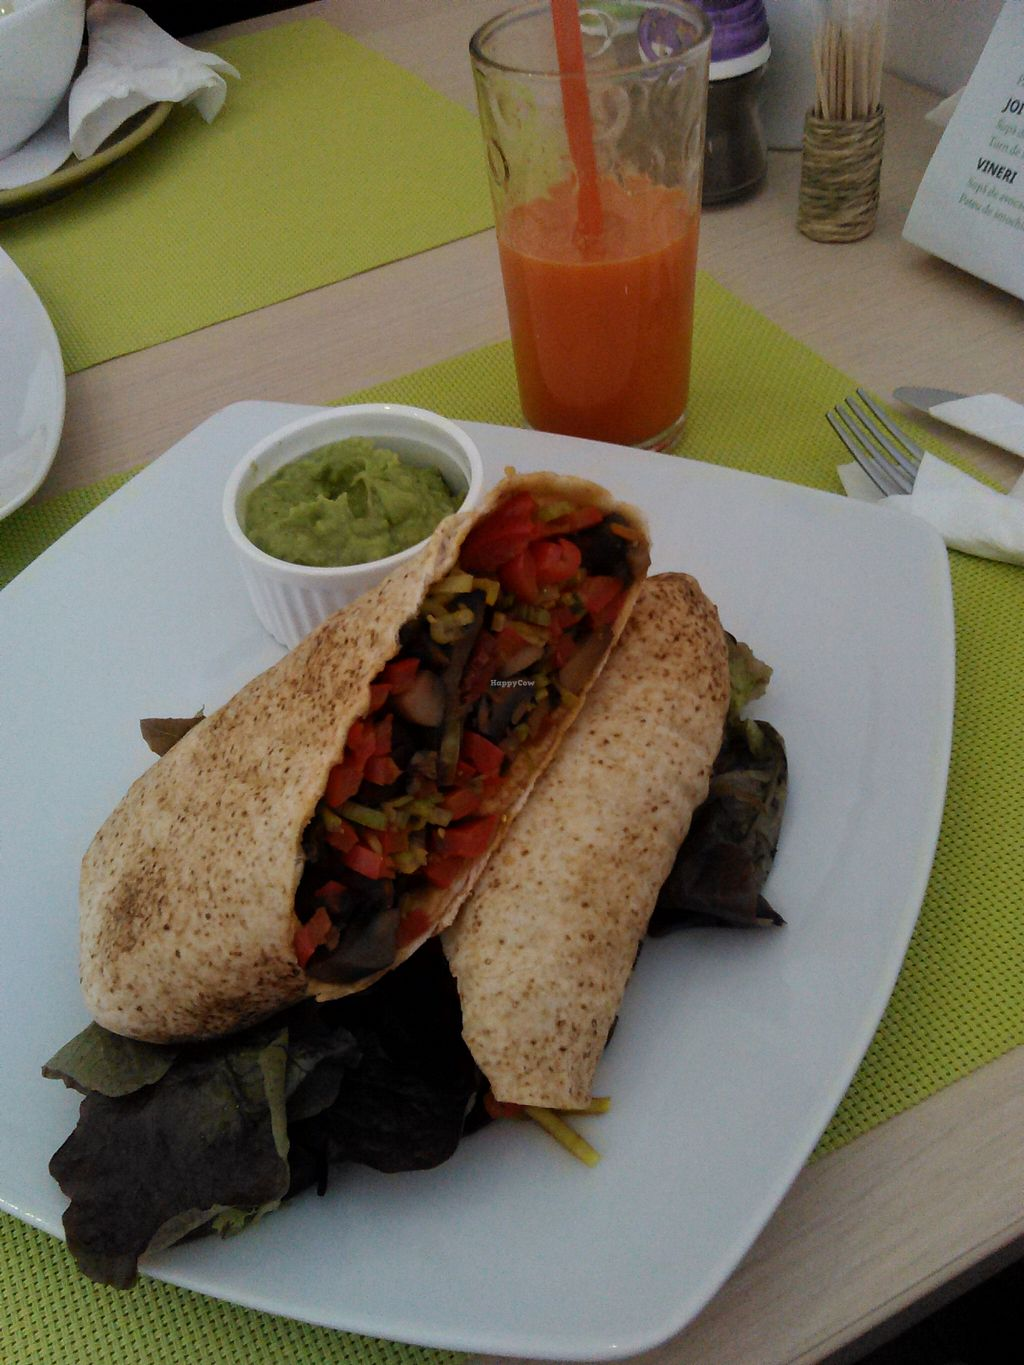 """Photo of BIOFresh  by <a href=""""/members/profile/alexandra_vegan"""">alexandra_vegan</a> <br/>Delicious mushroom fajita served with guacamole sauce <br/> March 7, 2016  - <a href='/contact/abuse/image/62092/139217'>Report</a>"""